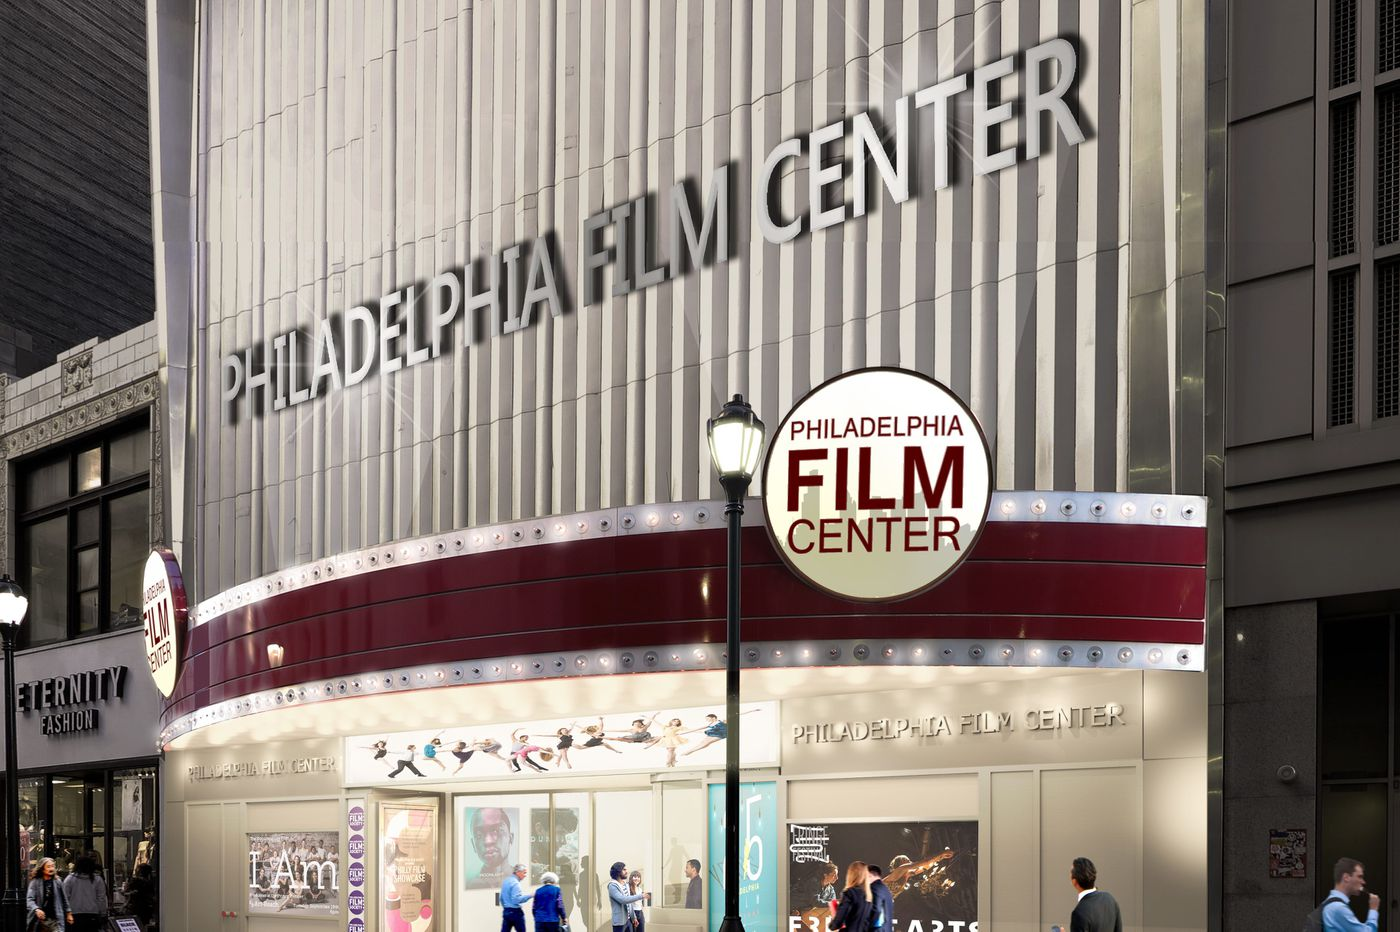 Prince Theater to rebrand as Philadelphia Film Center, with improvements scheduled for the future